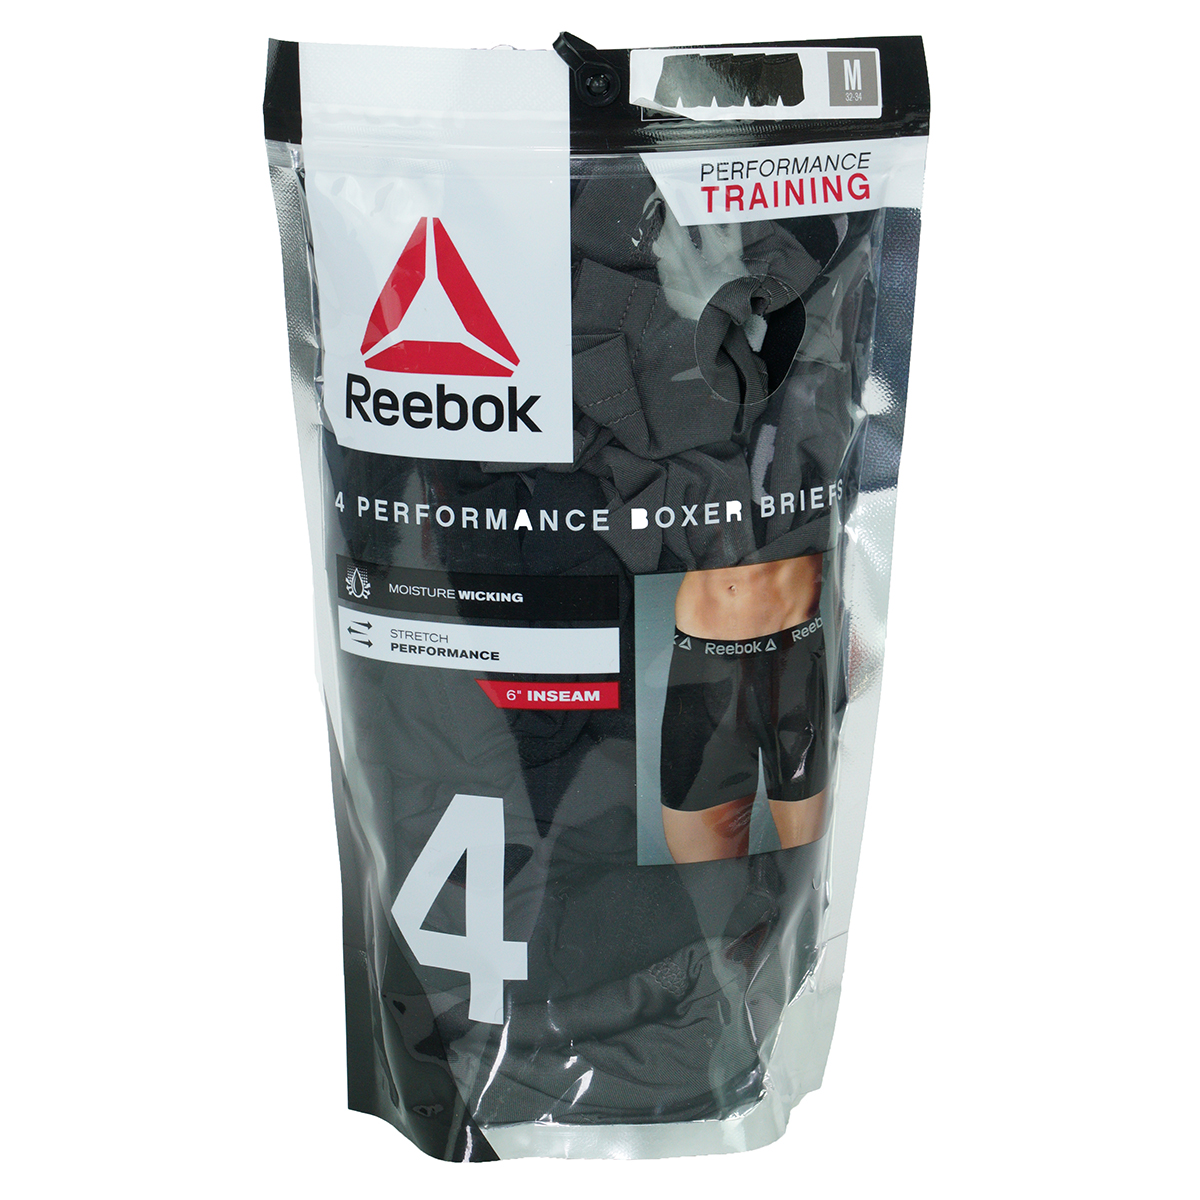 Reebok-Men-039-s-Performance-Boxer-Briefs-4-Pack thumbnail 9